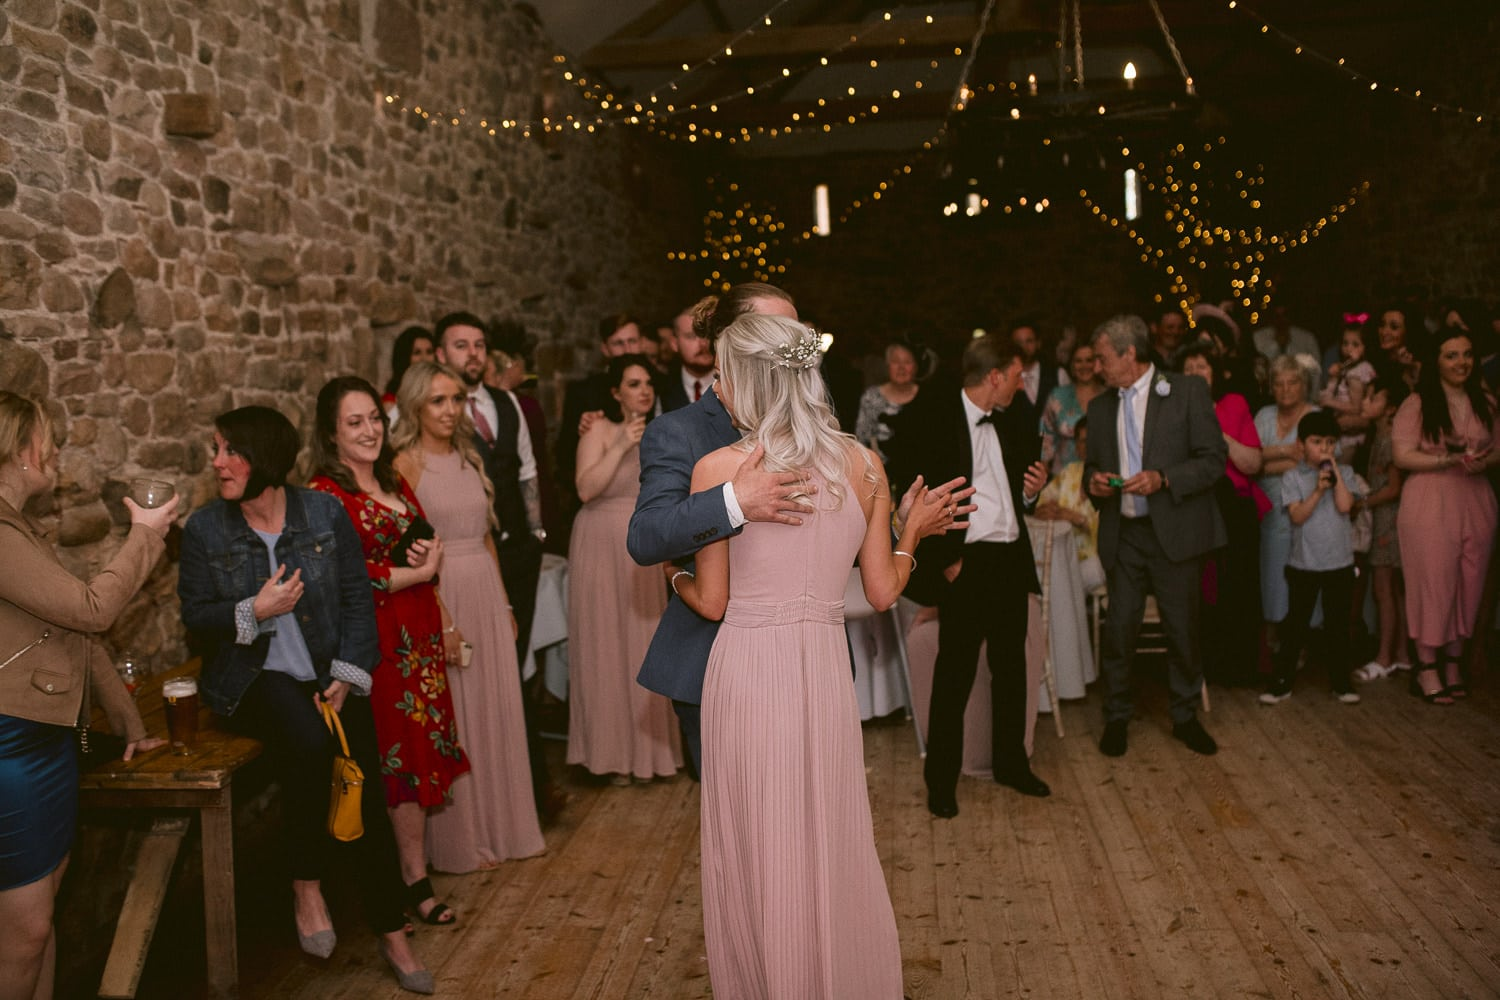 Guests Dancing In Main Hall Photography Shoot